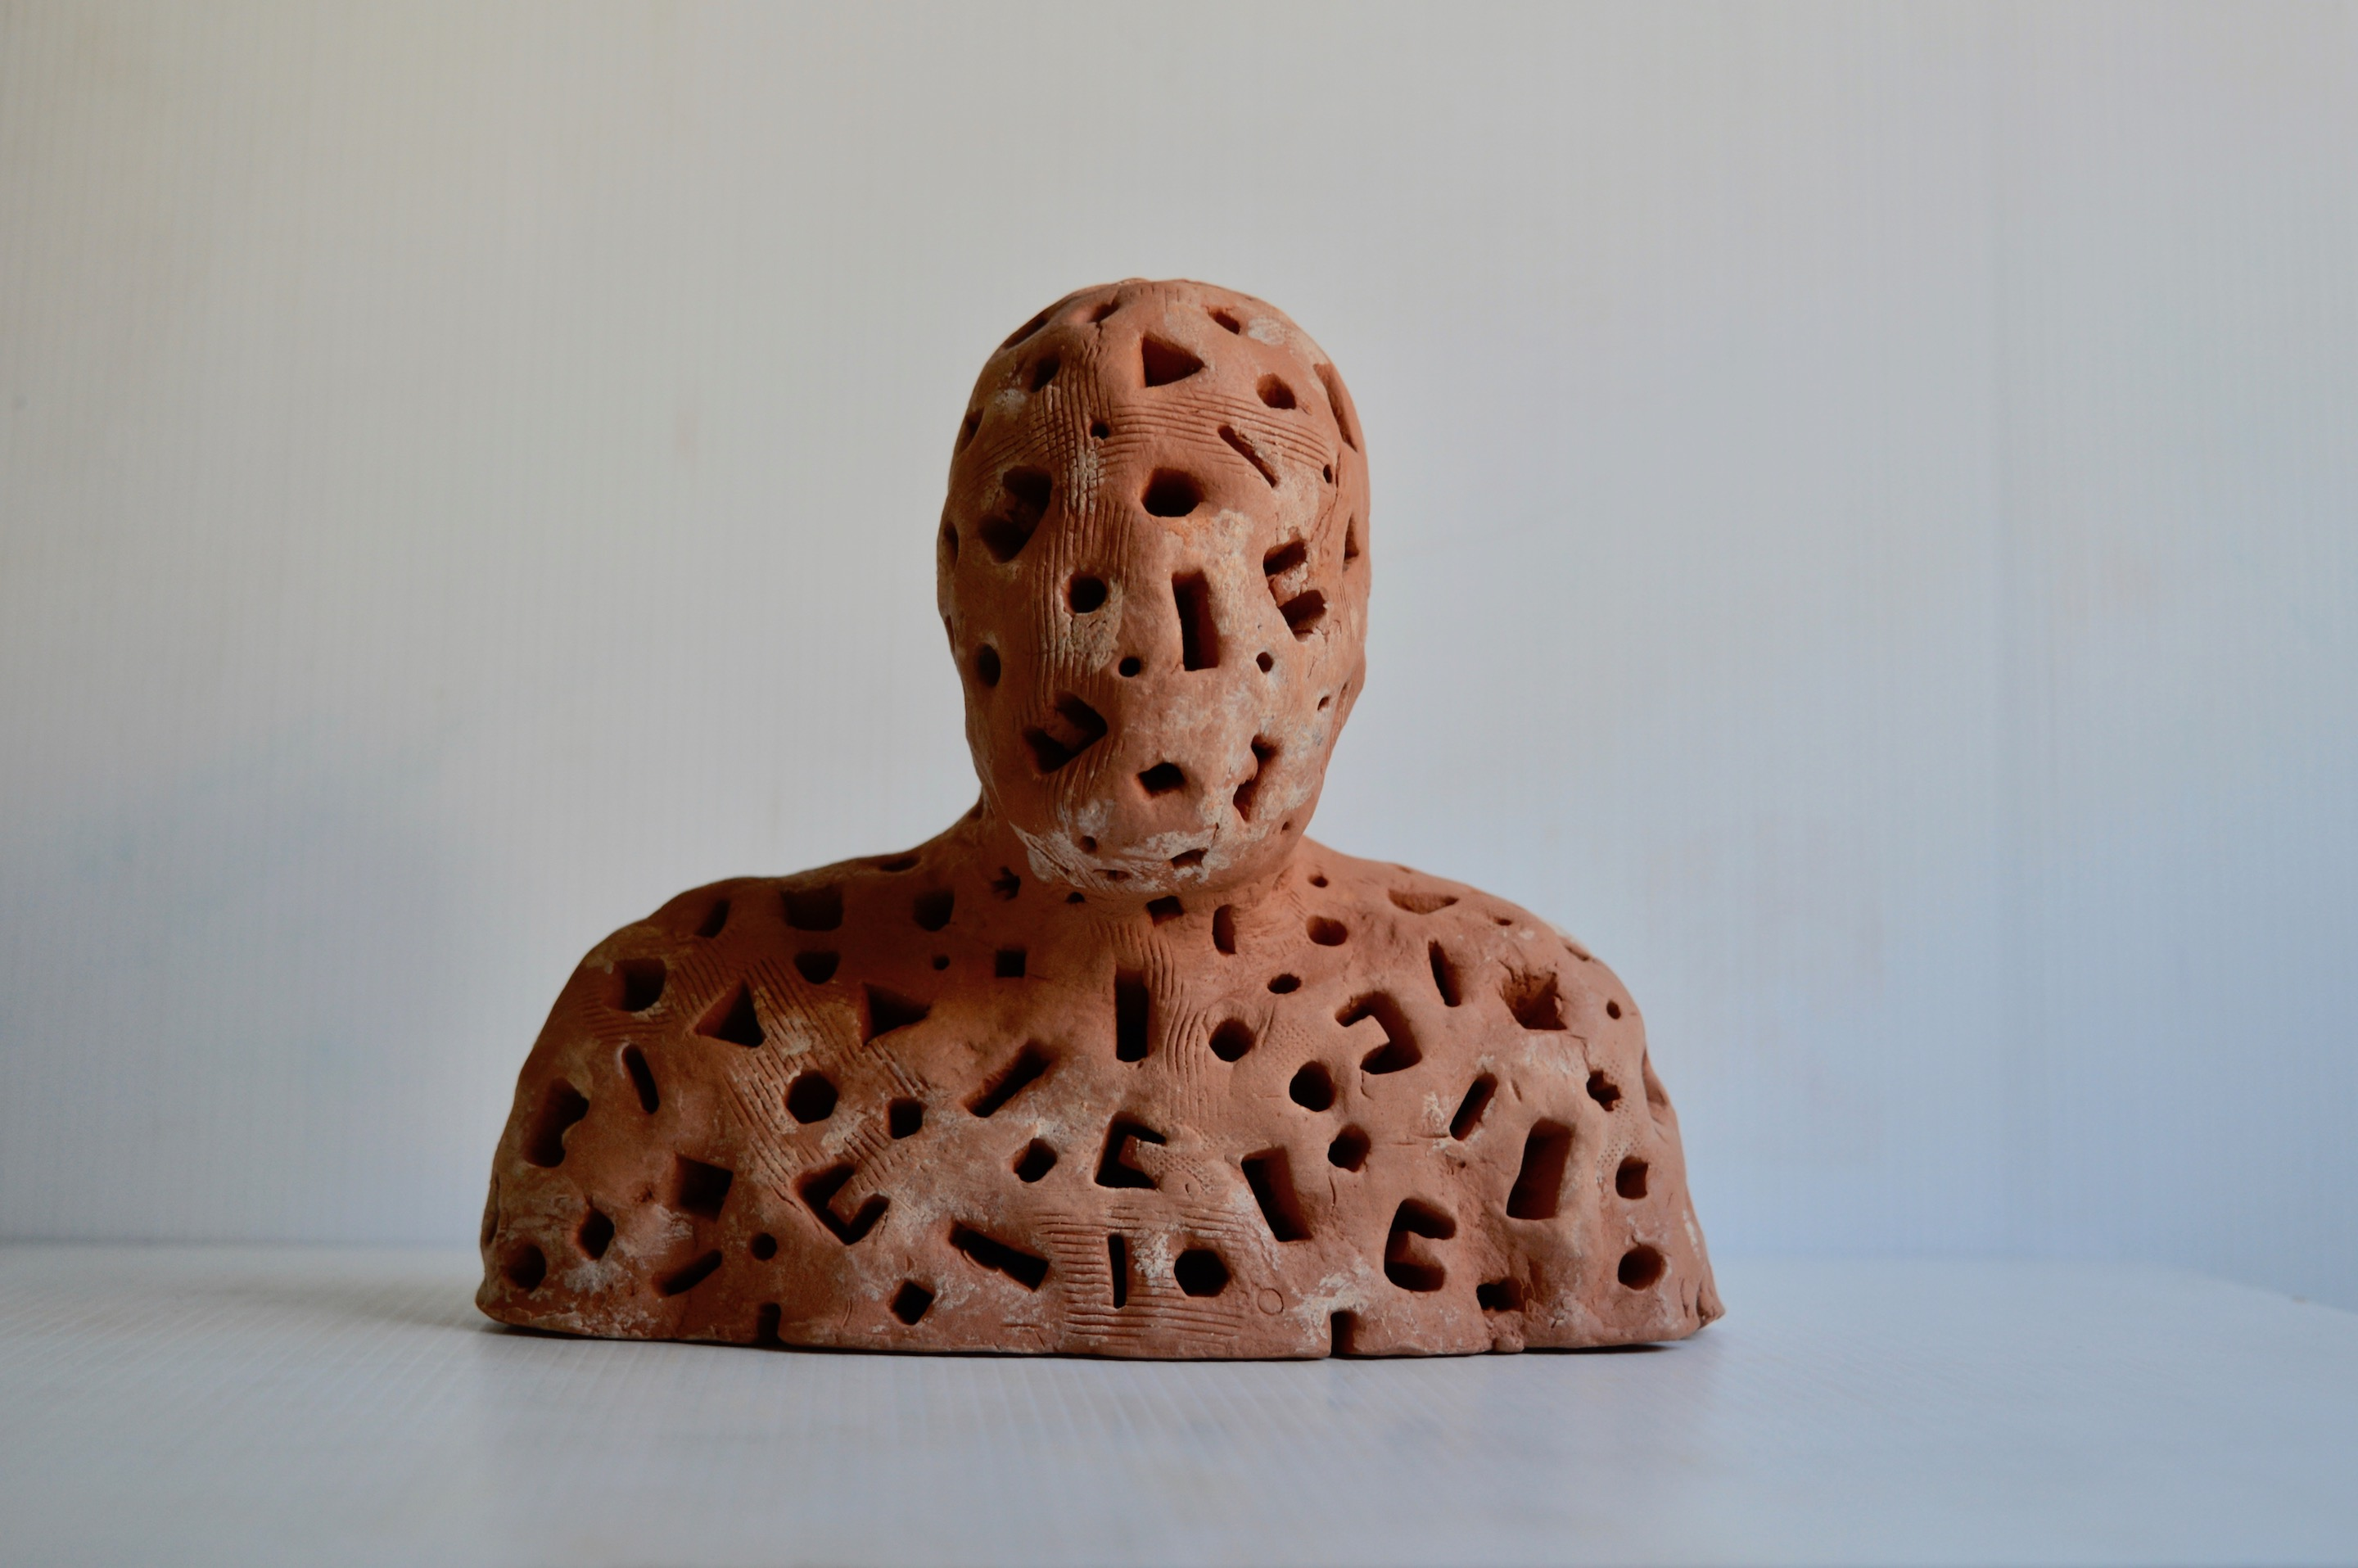 A semi-solid bisque fired terracotta figure 15cm wide which is part of a developing installation of 13 or more figures in glazed and unglazed terra-cotta, plaster and papier mache illuminated by LED lights on stands made of cardboard and mdf